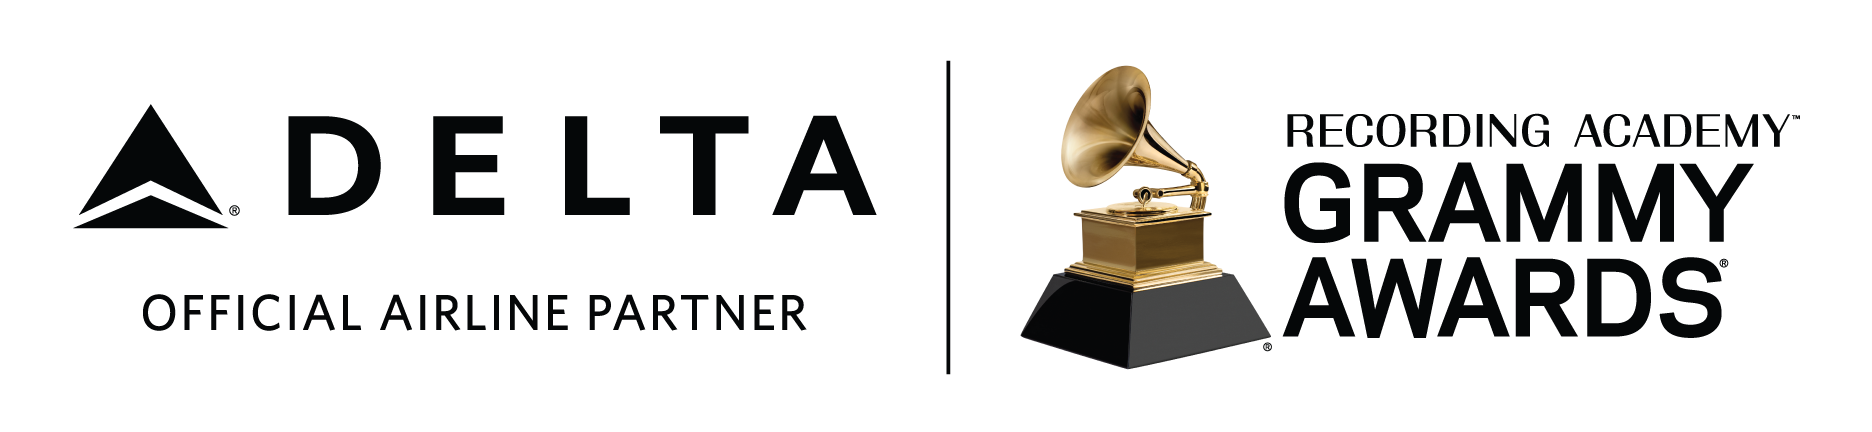 Win your way to The GRAMMY Awards® in L.A.